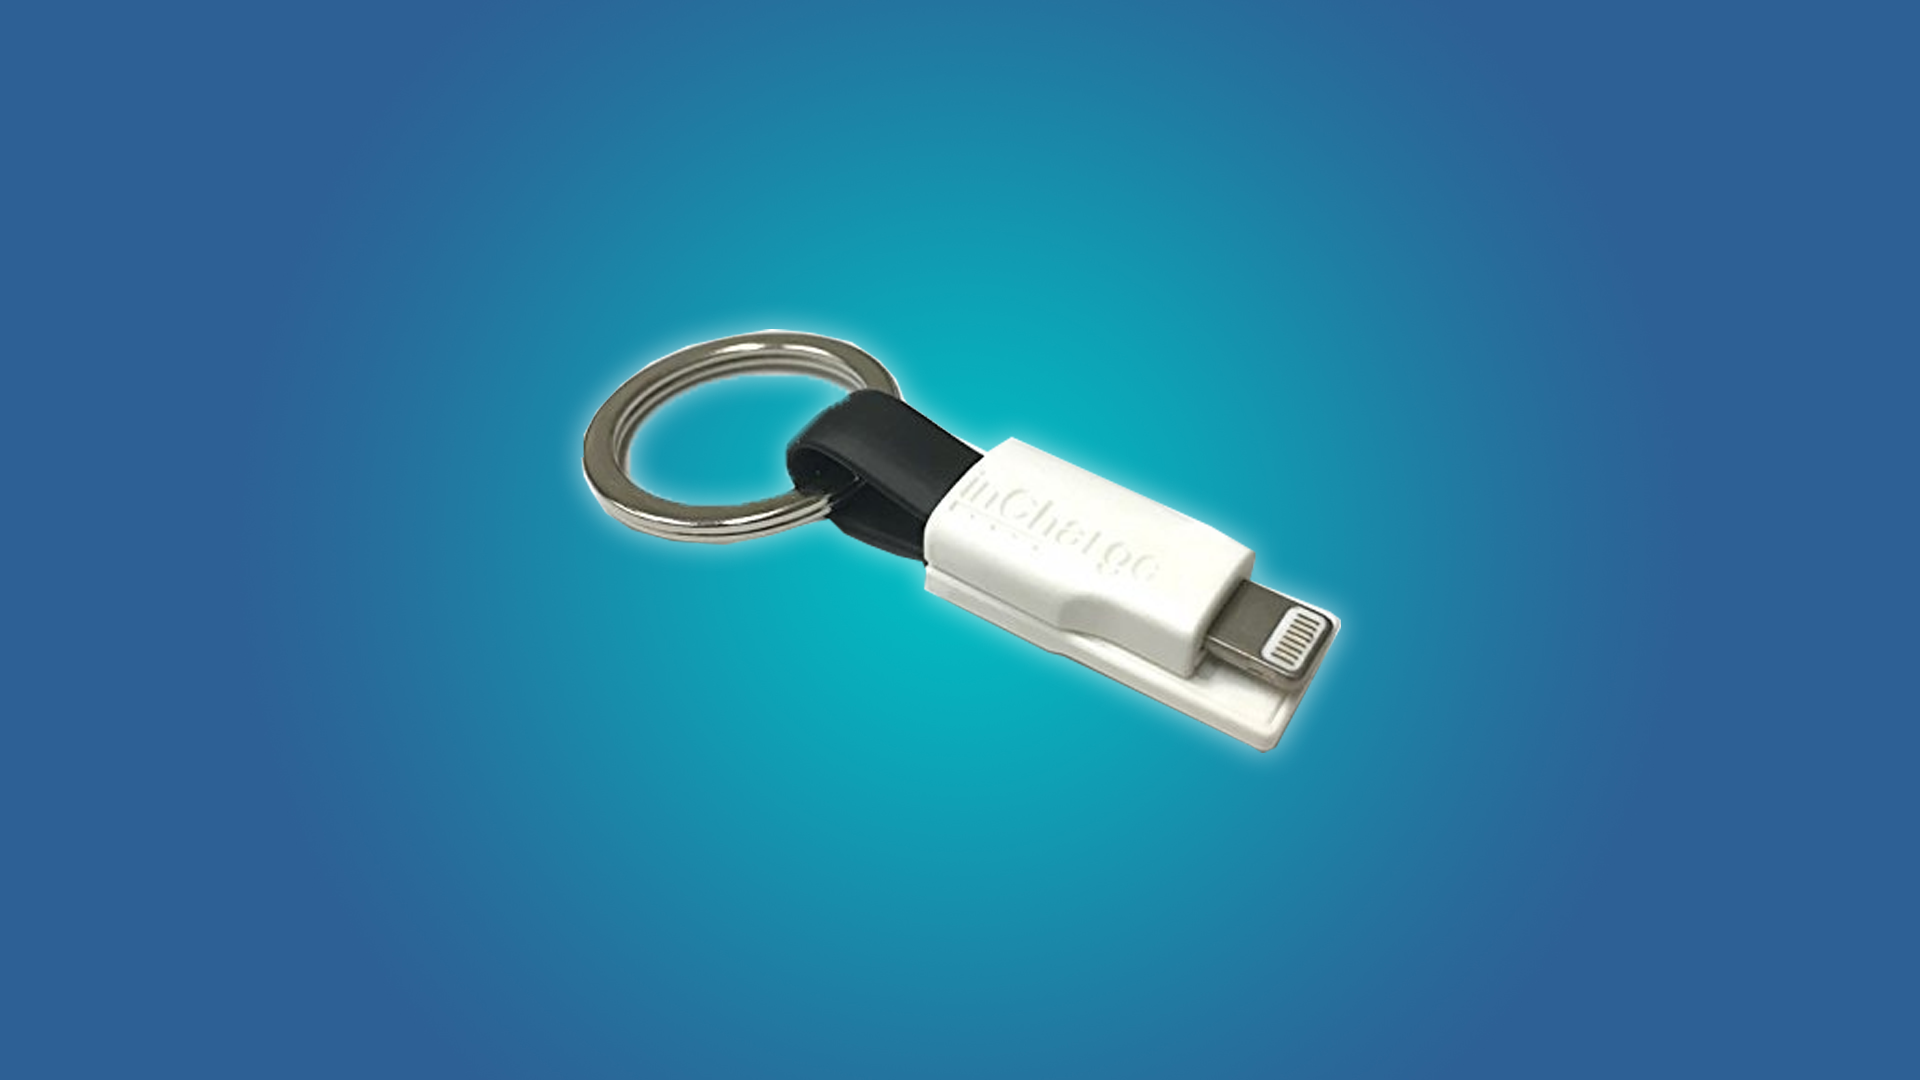 The inCharge Lightning Cable